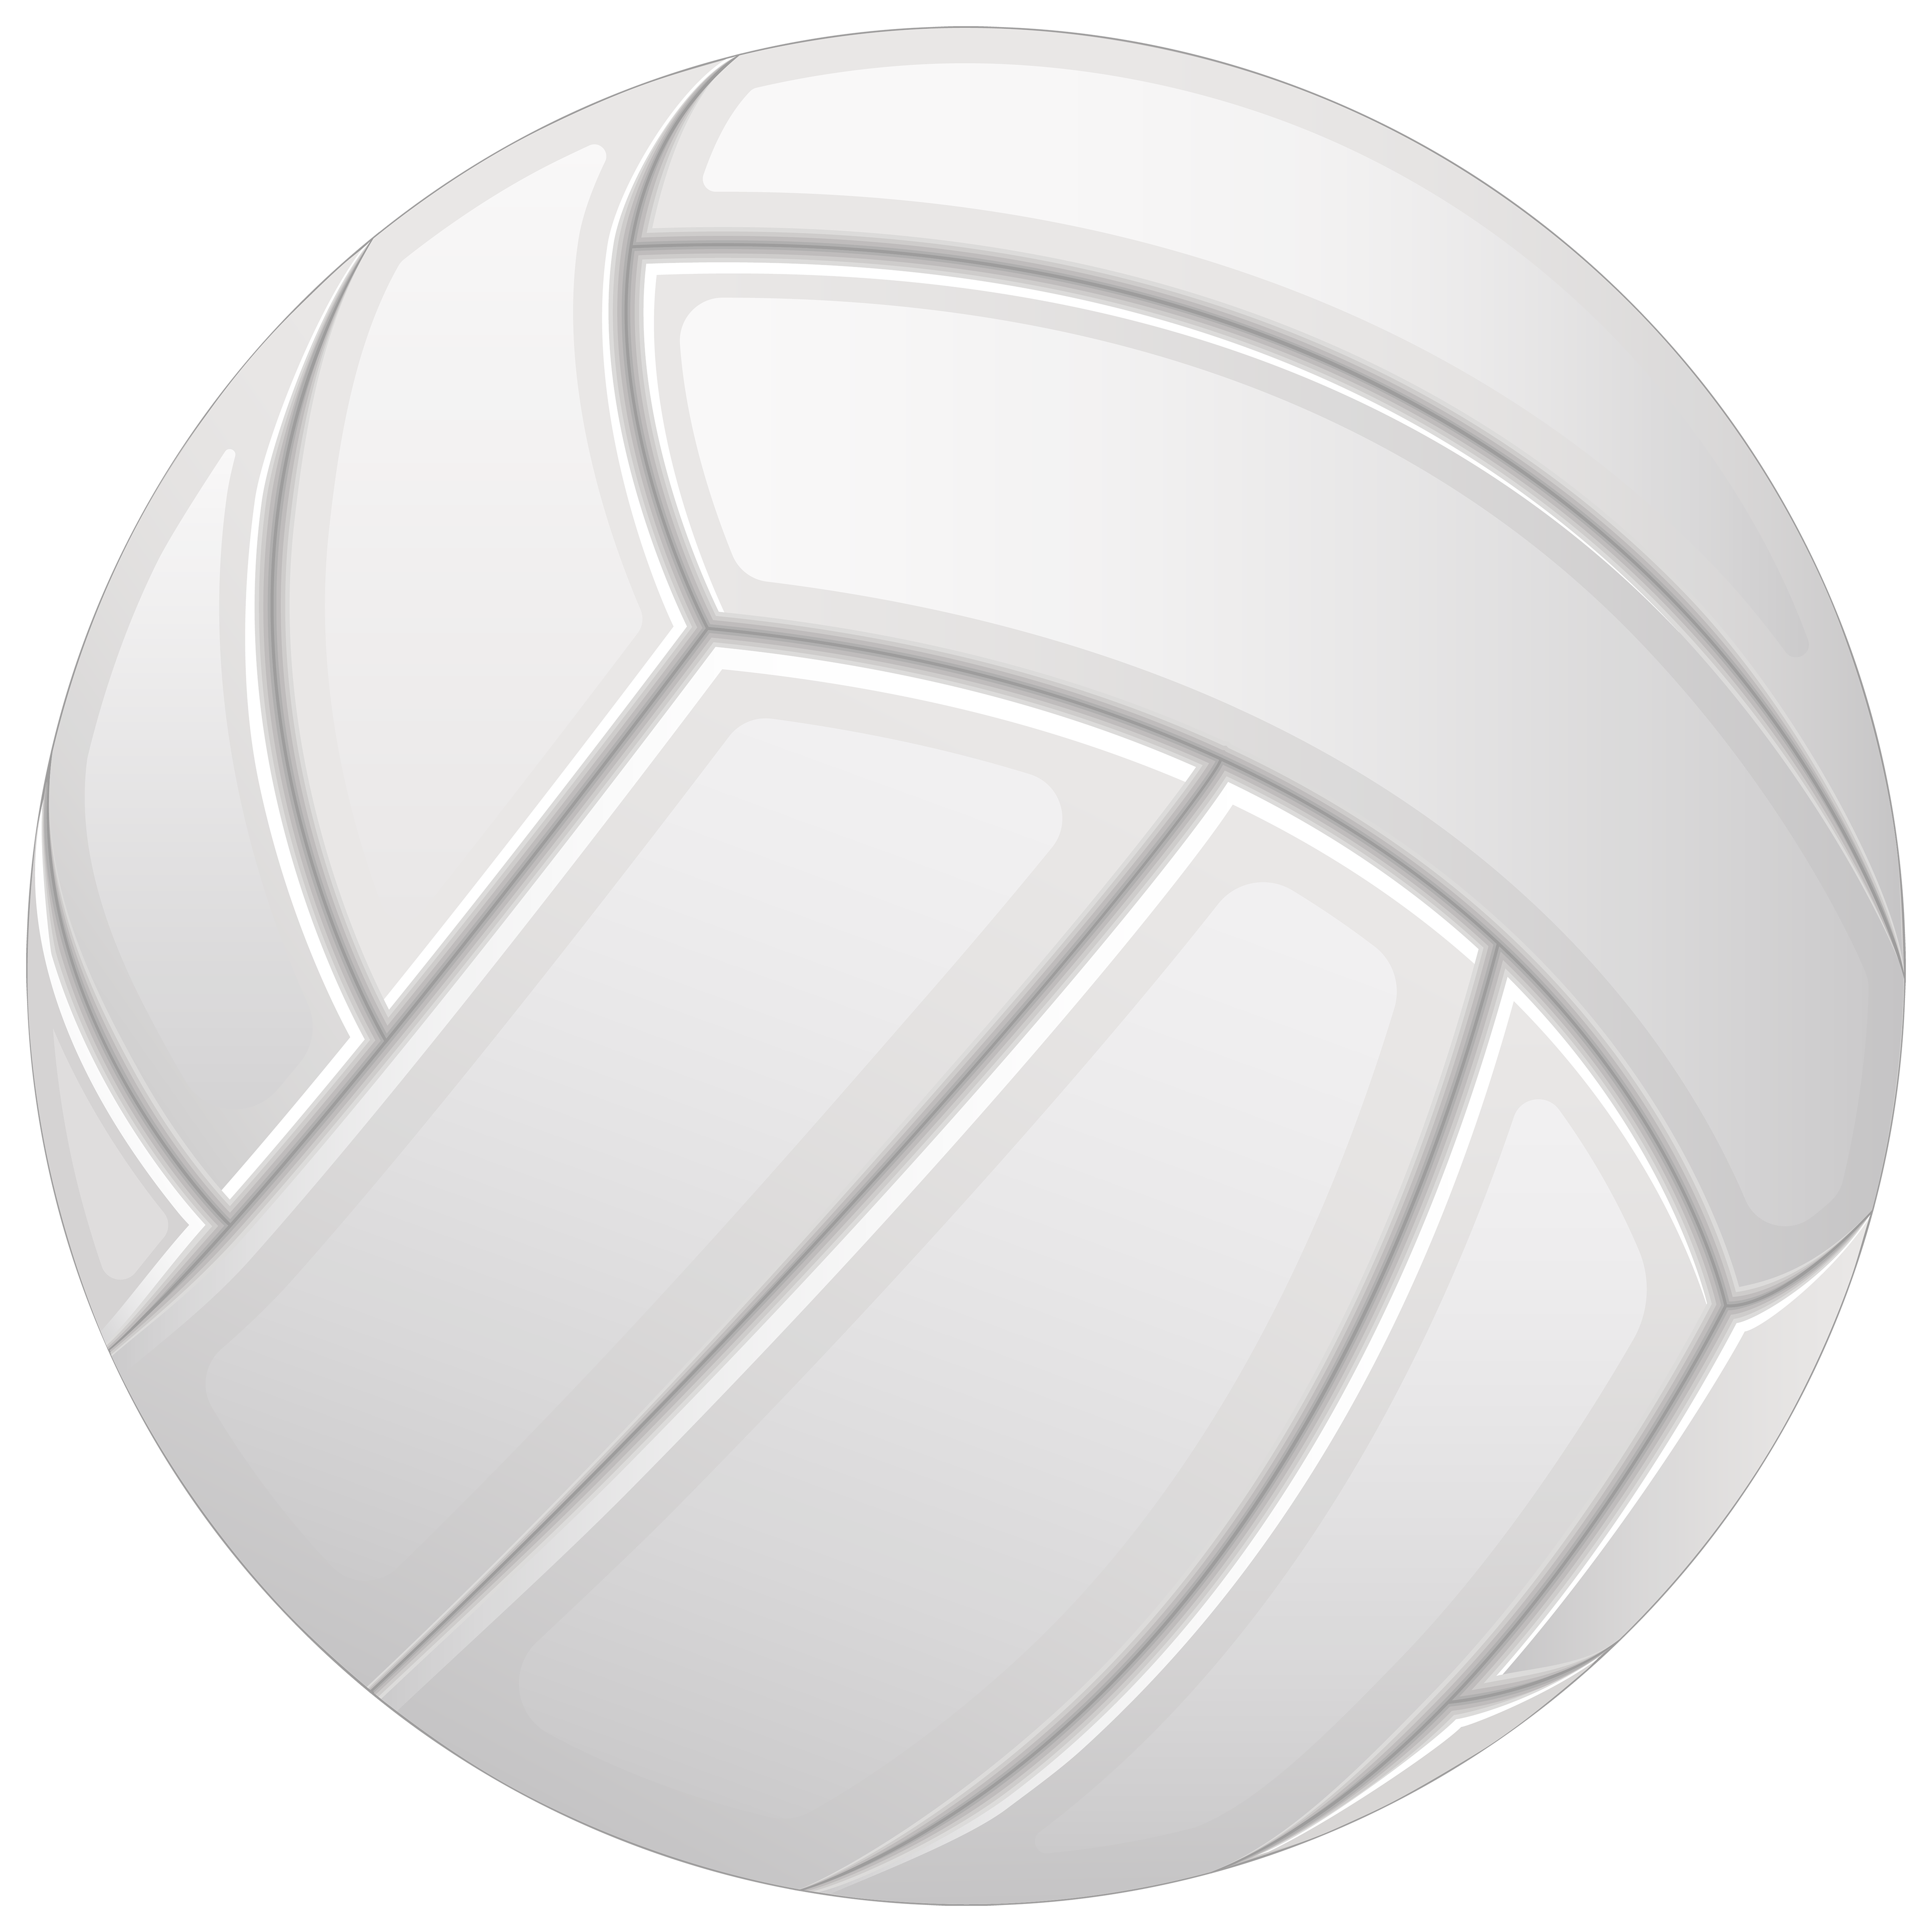 Heart volleyball clipart vector library download Volleyball PNG Clipart - Best WEB Clipart vector library download